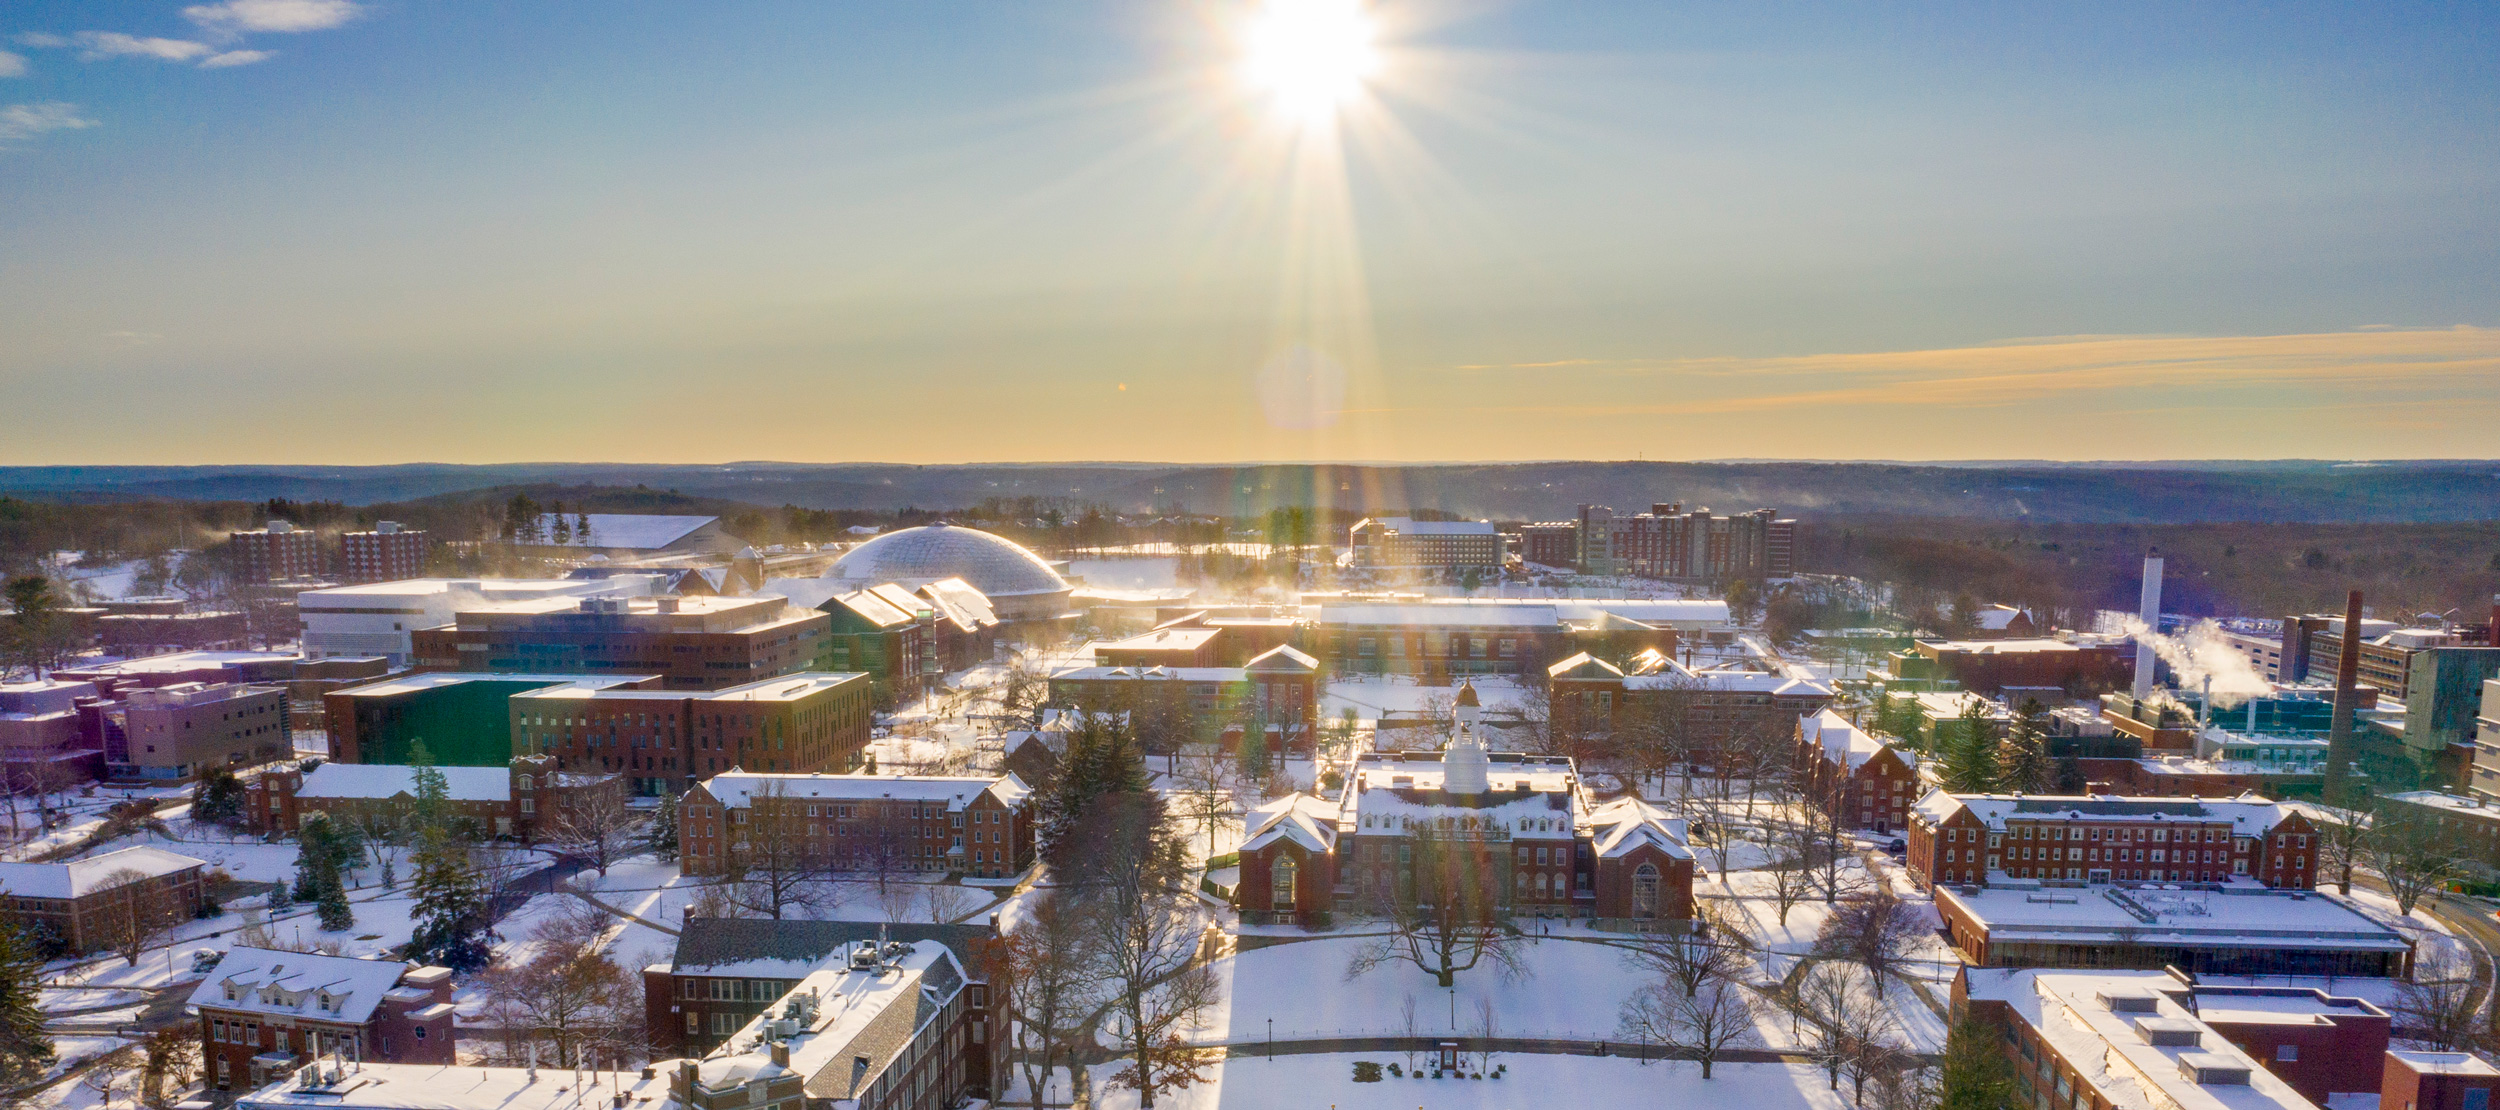 Aerial drone views of the first snowstorm of the semester